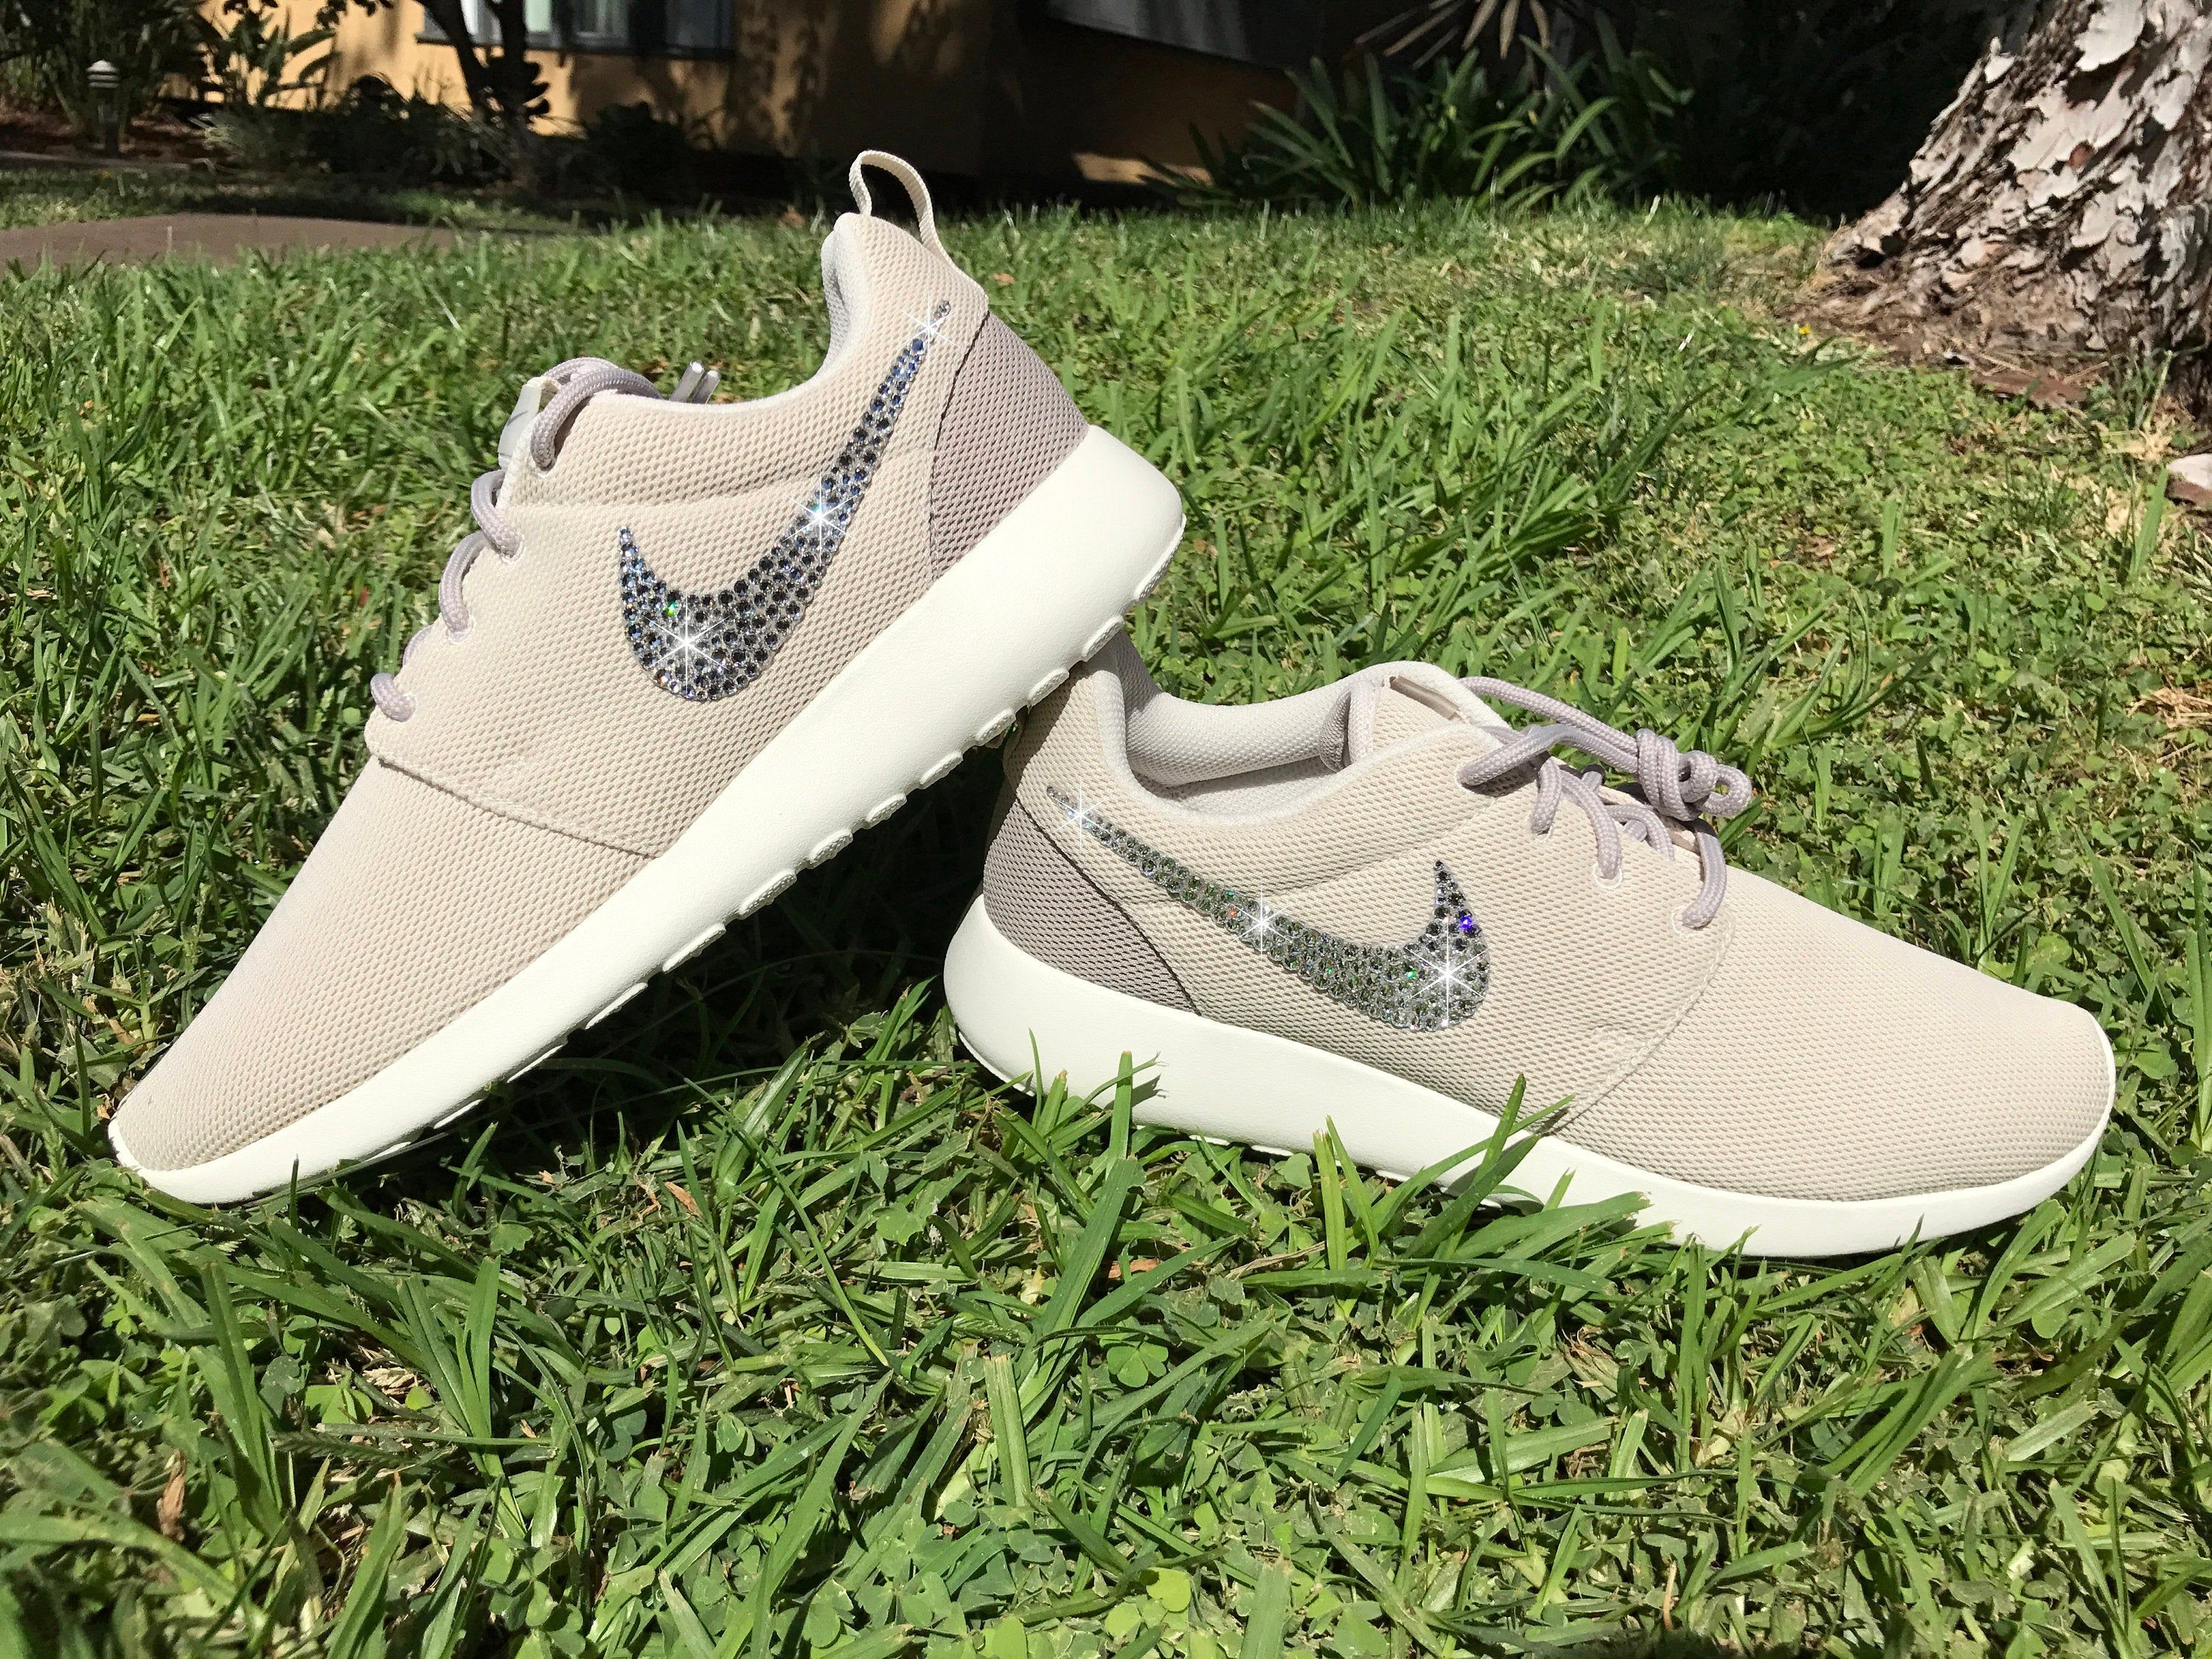 Swarovski Women's Nike Roshe One Run Pink & Navy Sneakers Blinged Out With Authentic Clear Swarovski Crystals Custom Bling Nike Shoes